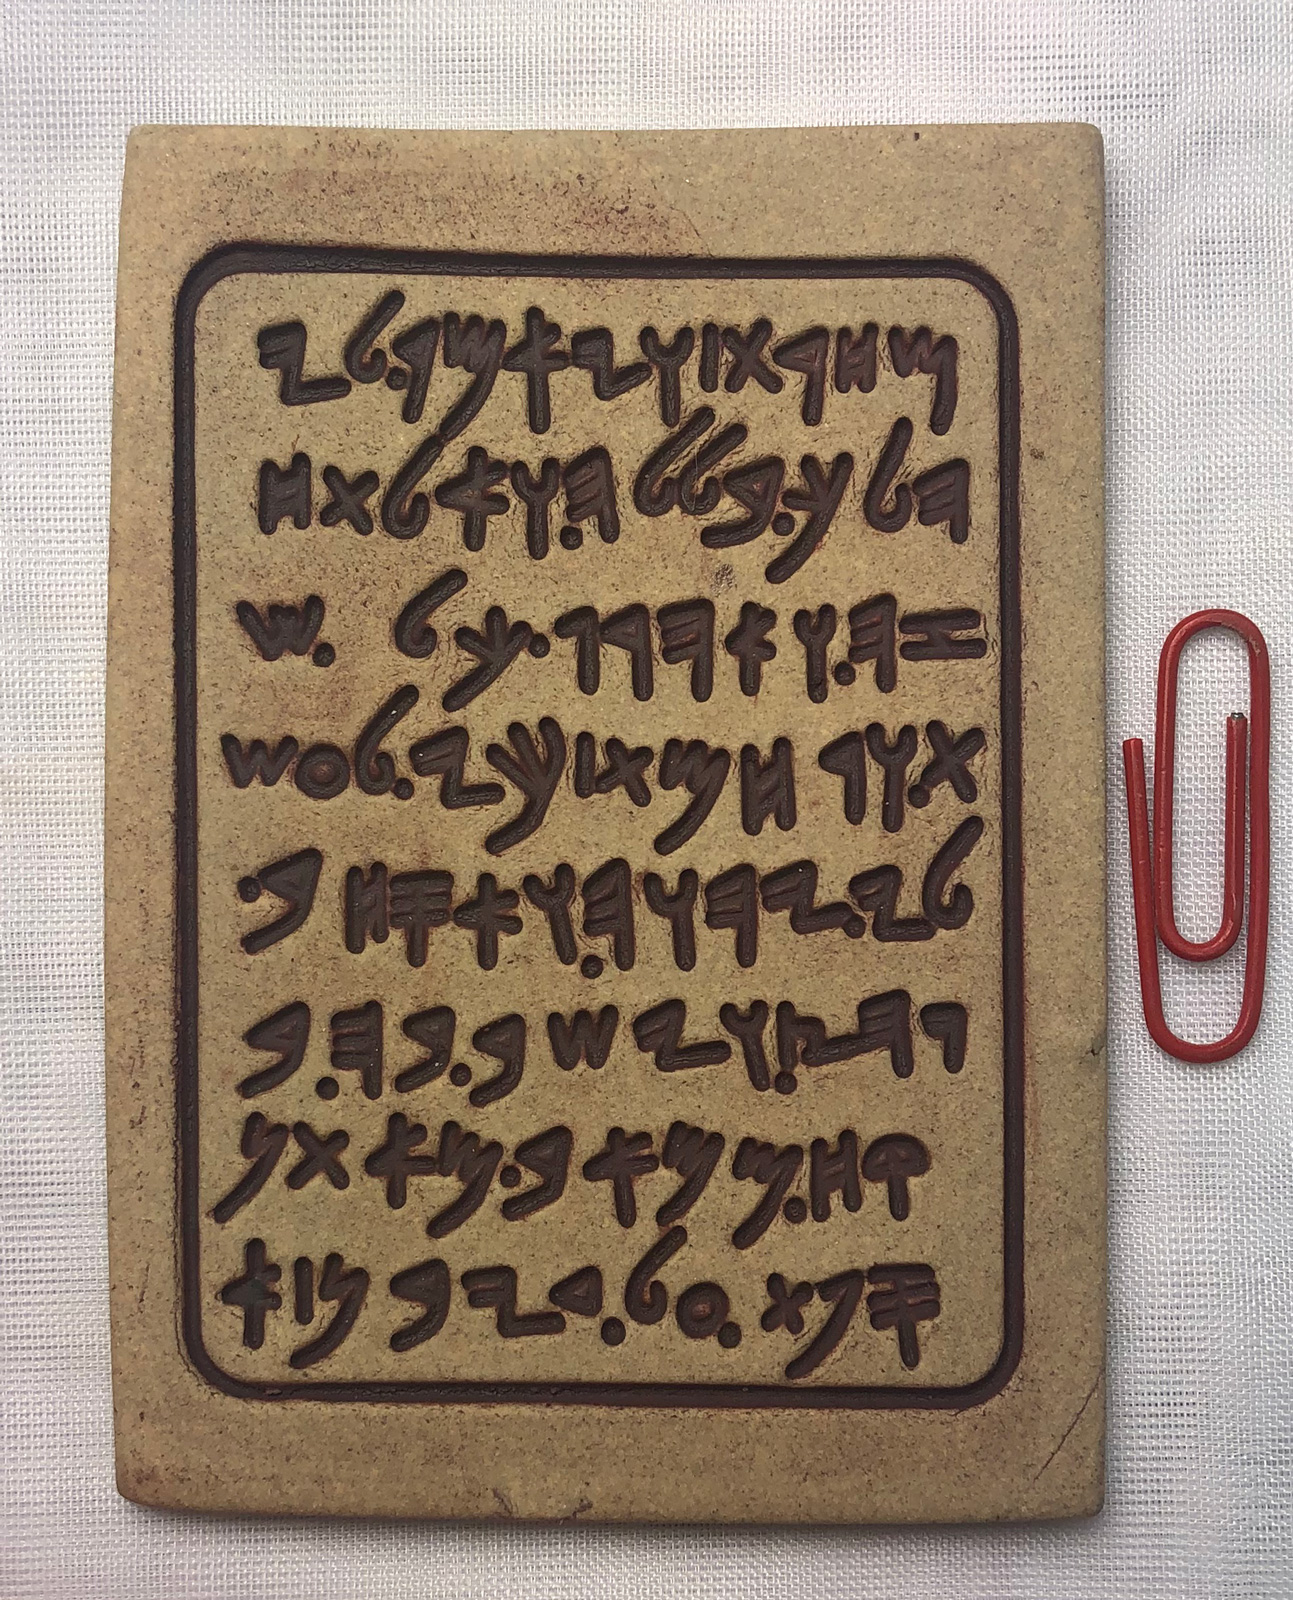 Letterpress plate with Aramaic lettering